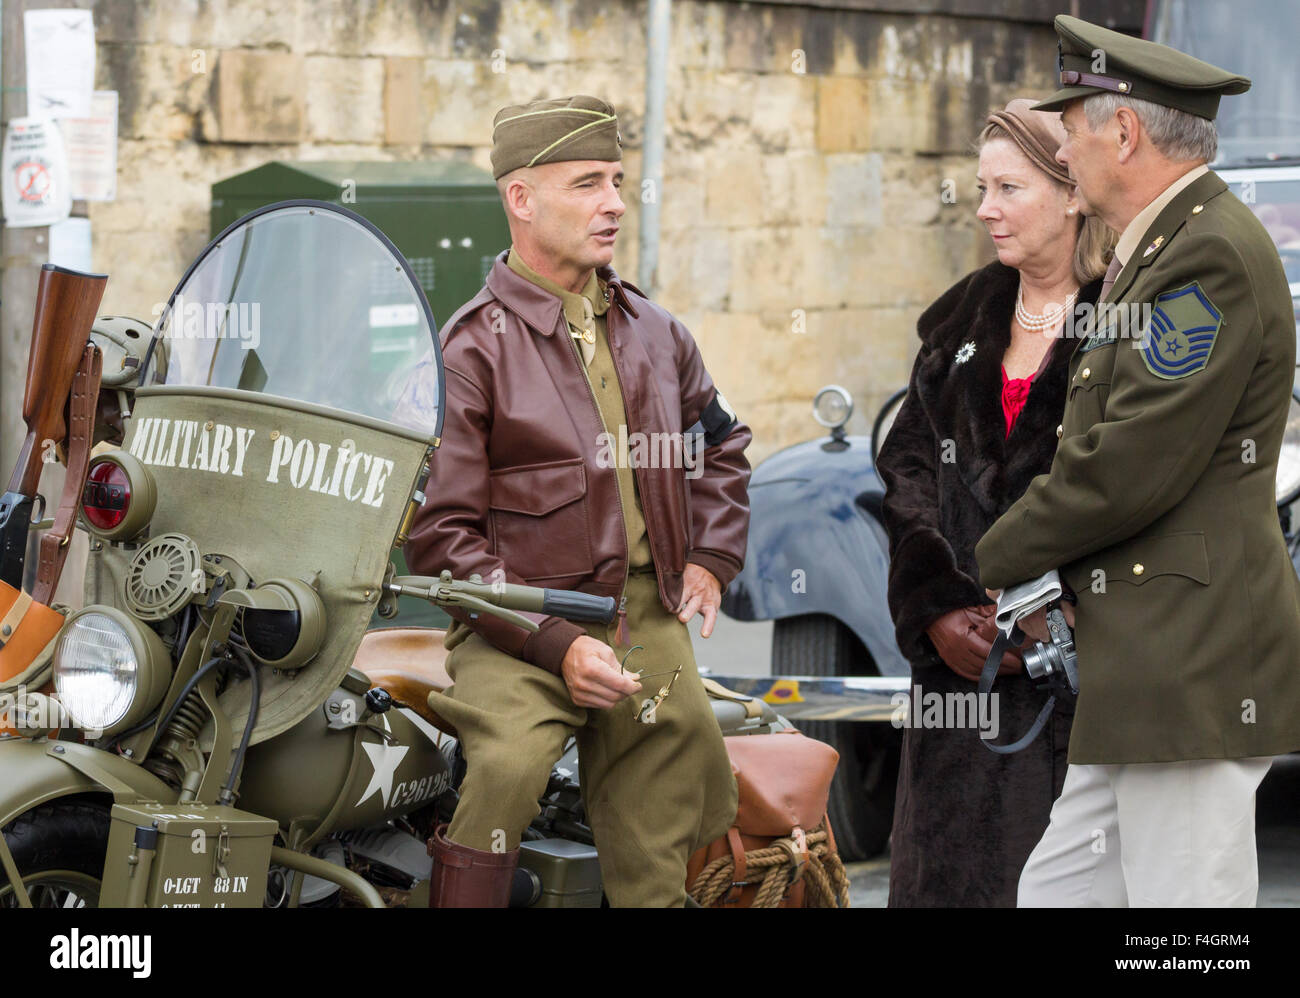 Pickering, North Yorkshire, UK. 17th October, 2015. Pickering`s annual Wartime and 40`s Weekend attracts thousands, - Stock Image